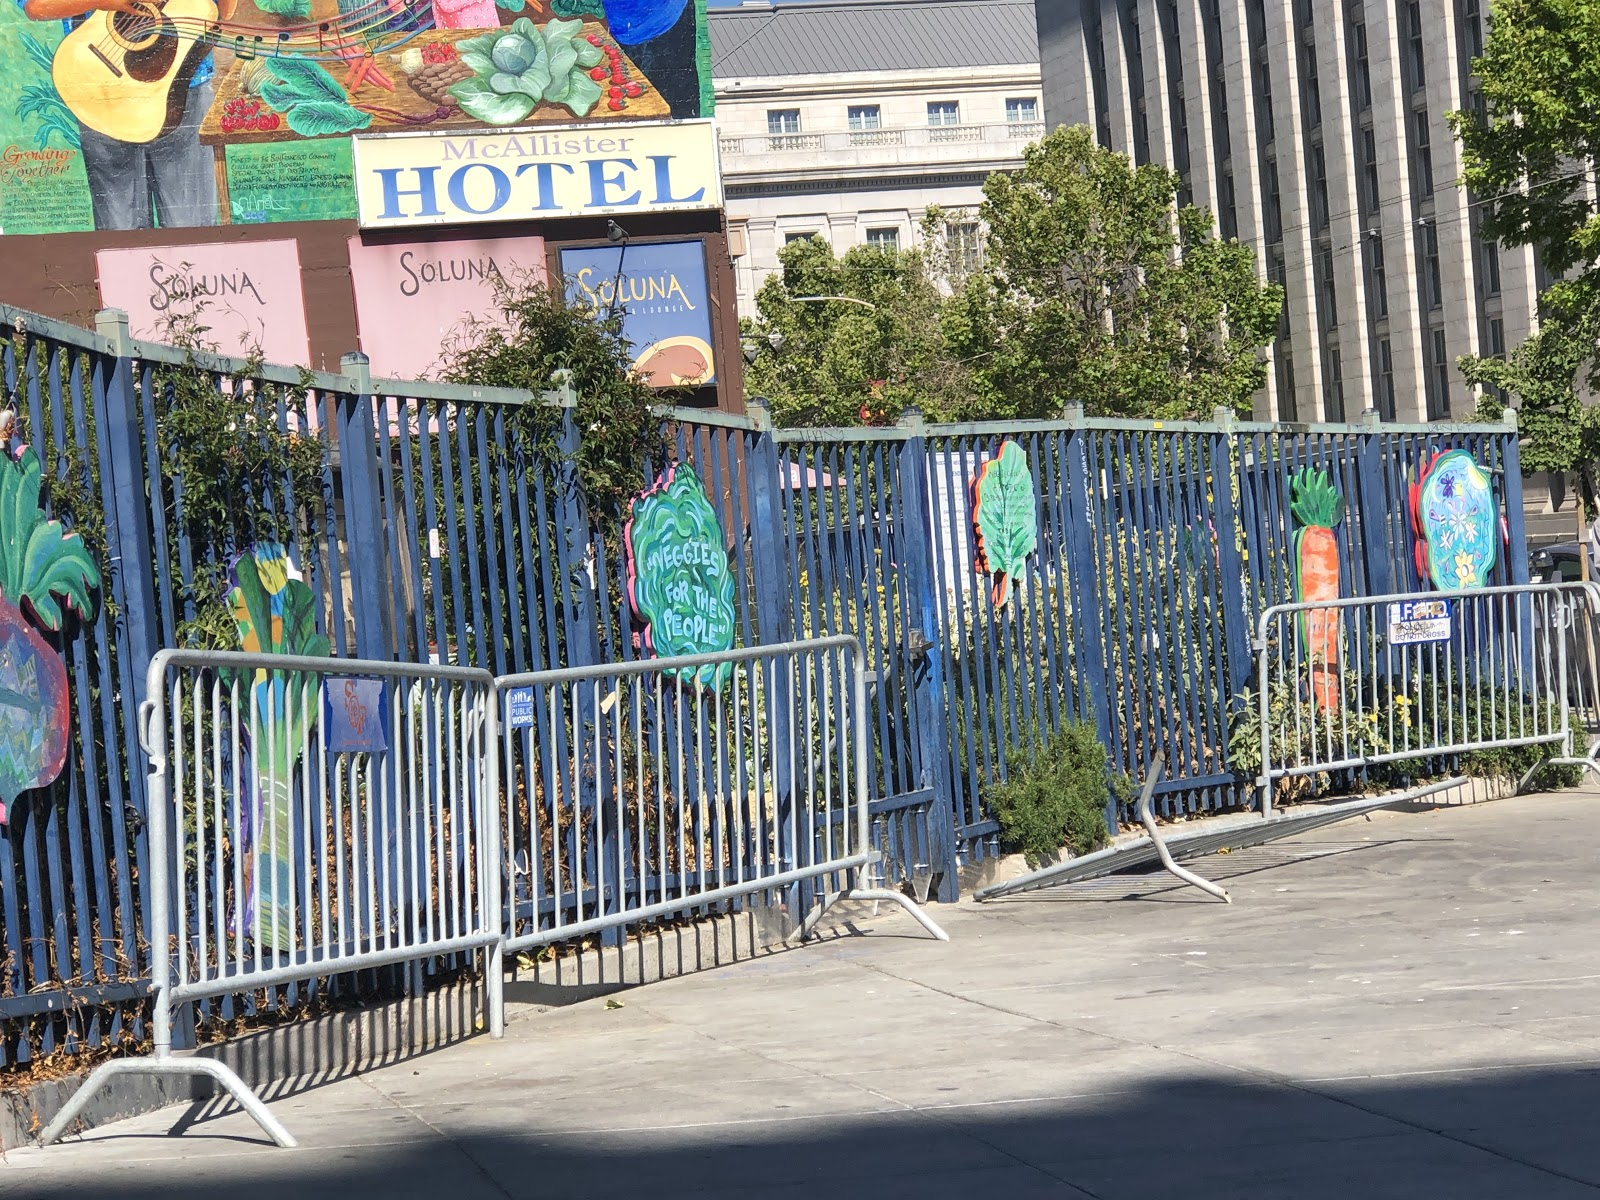 barricades around the Tenderloin community garden